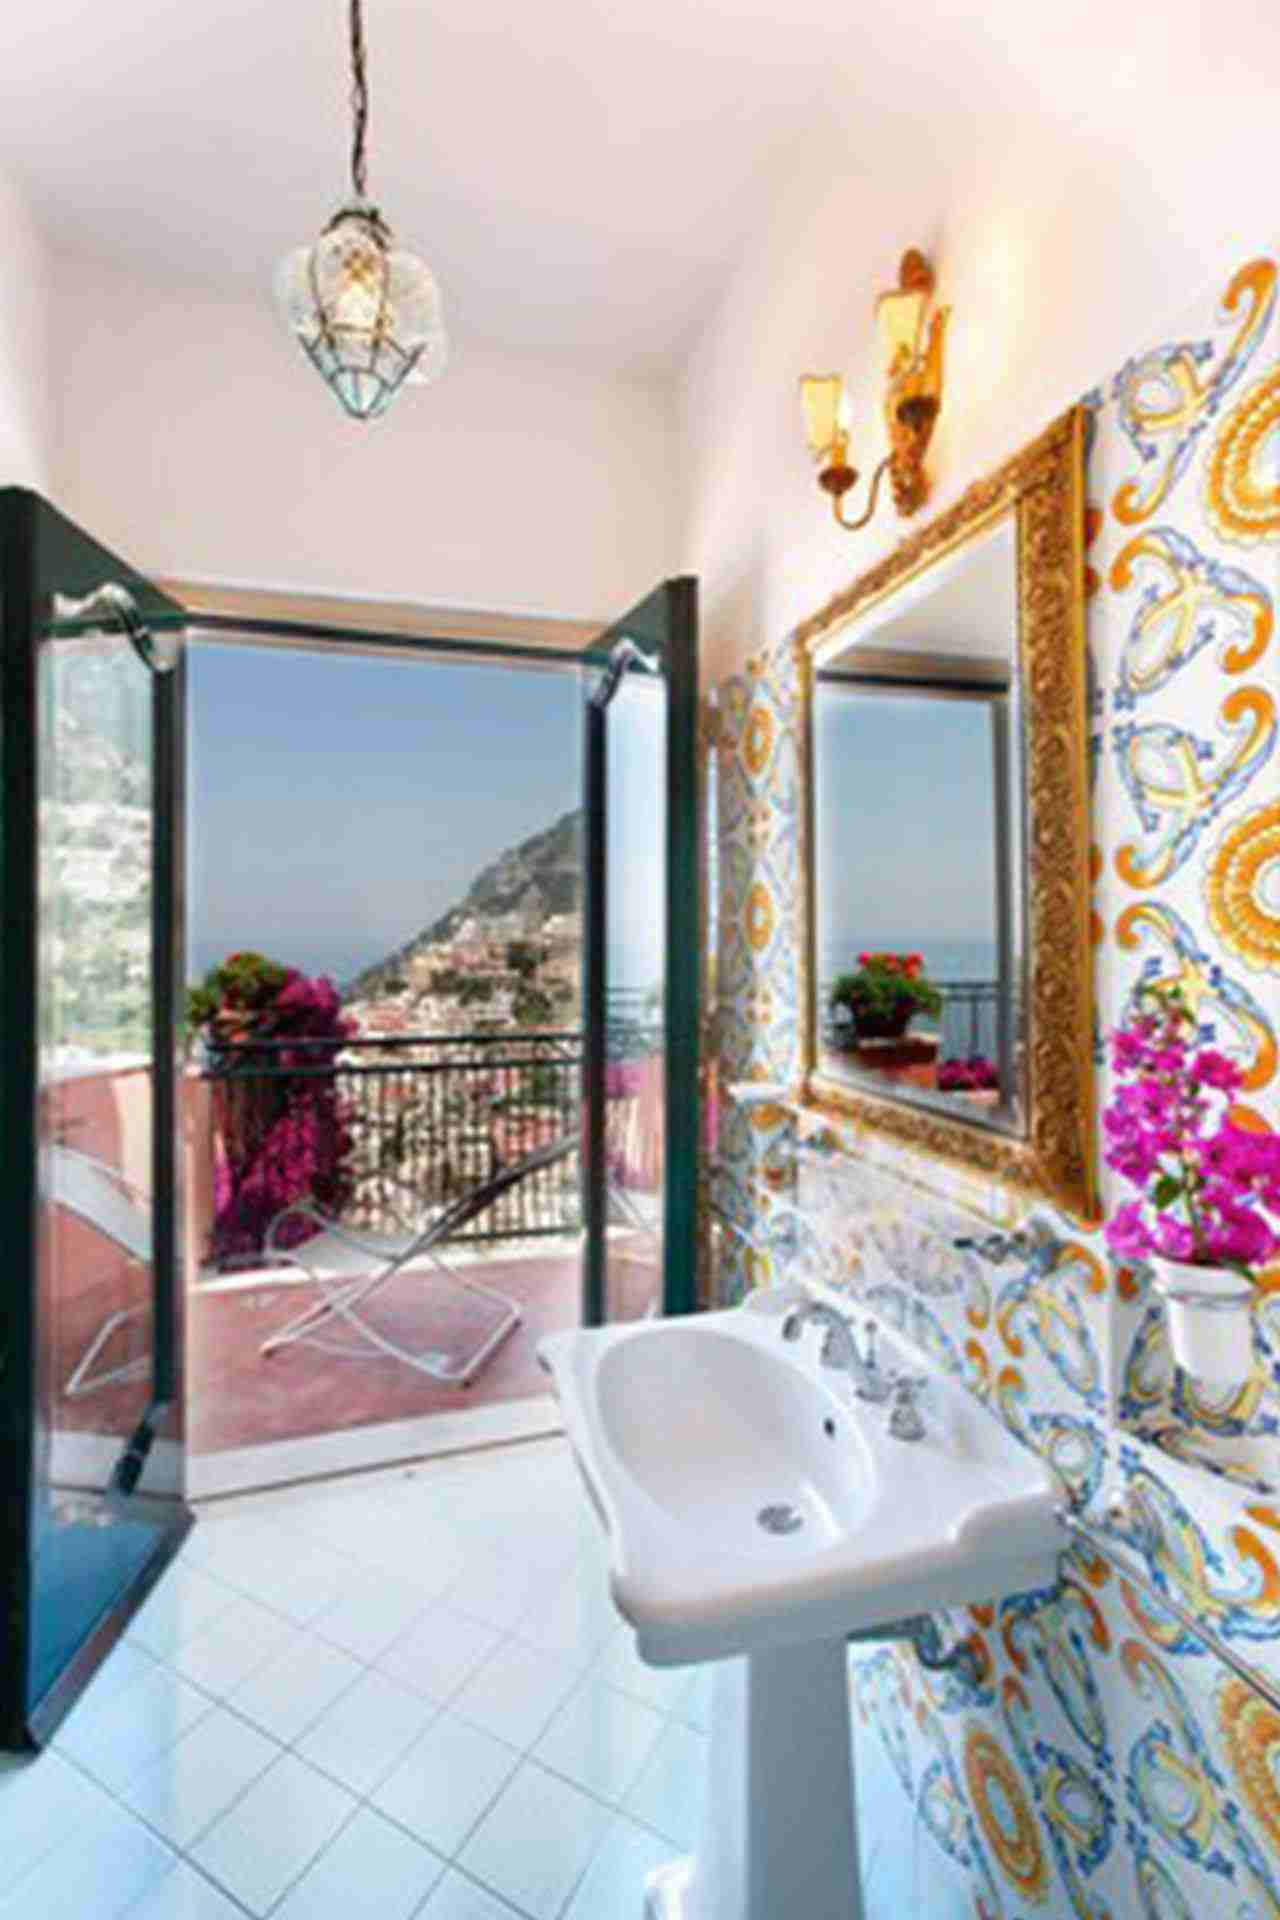 25 Positano bathroom